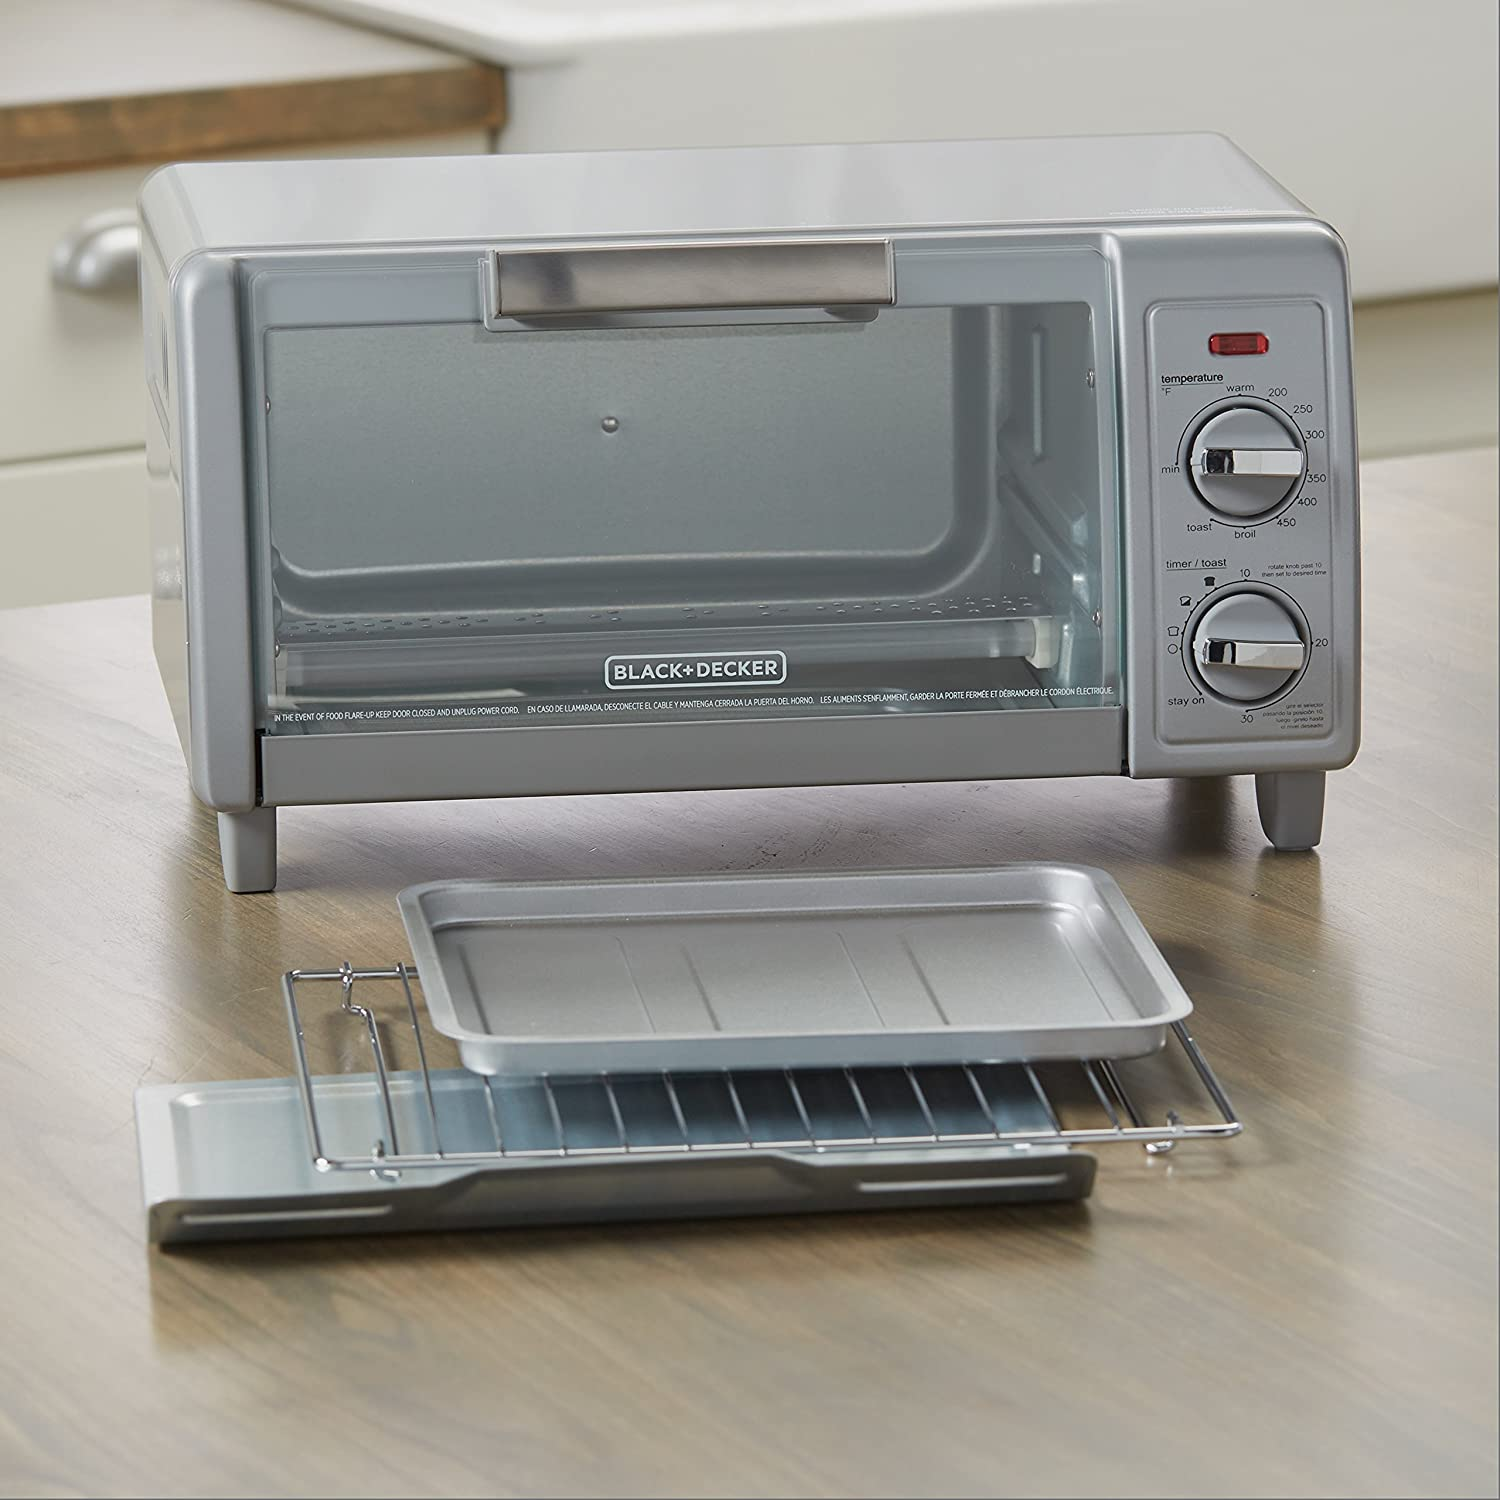 Amazon.com: BLACK+DECKER 4-Slice Toaster Oven with Easy Controls, Silver, TO1705SG: Kitchen & Dining